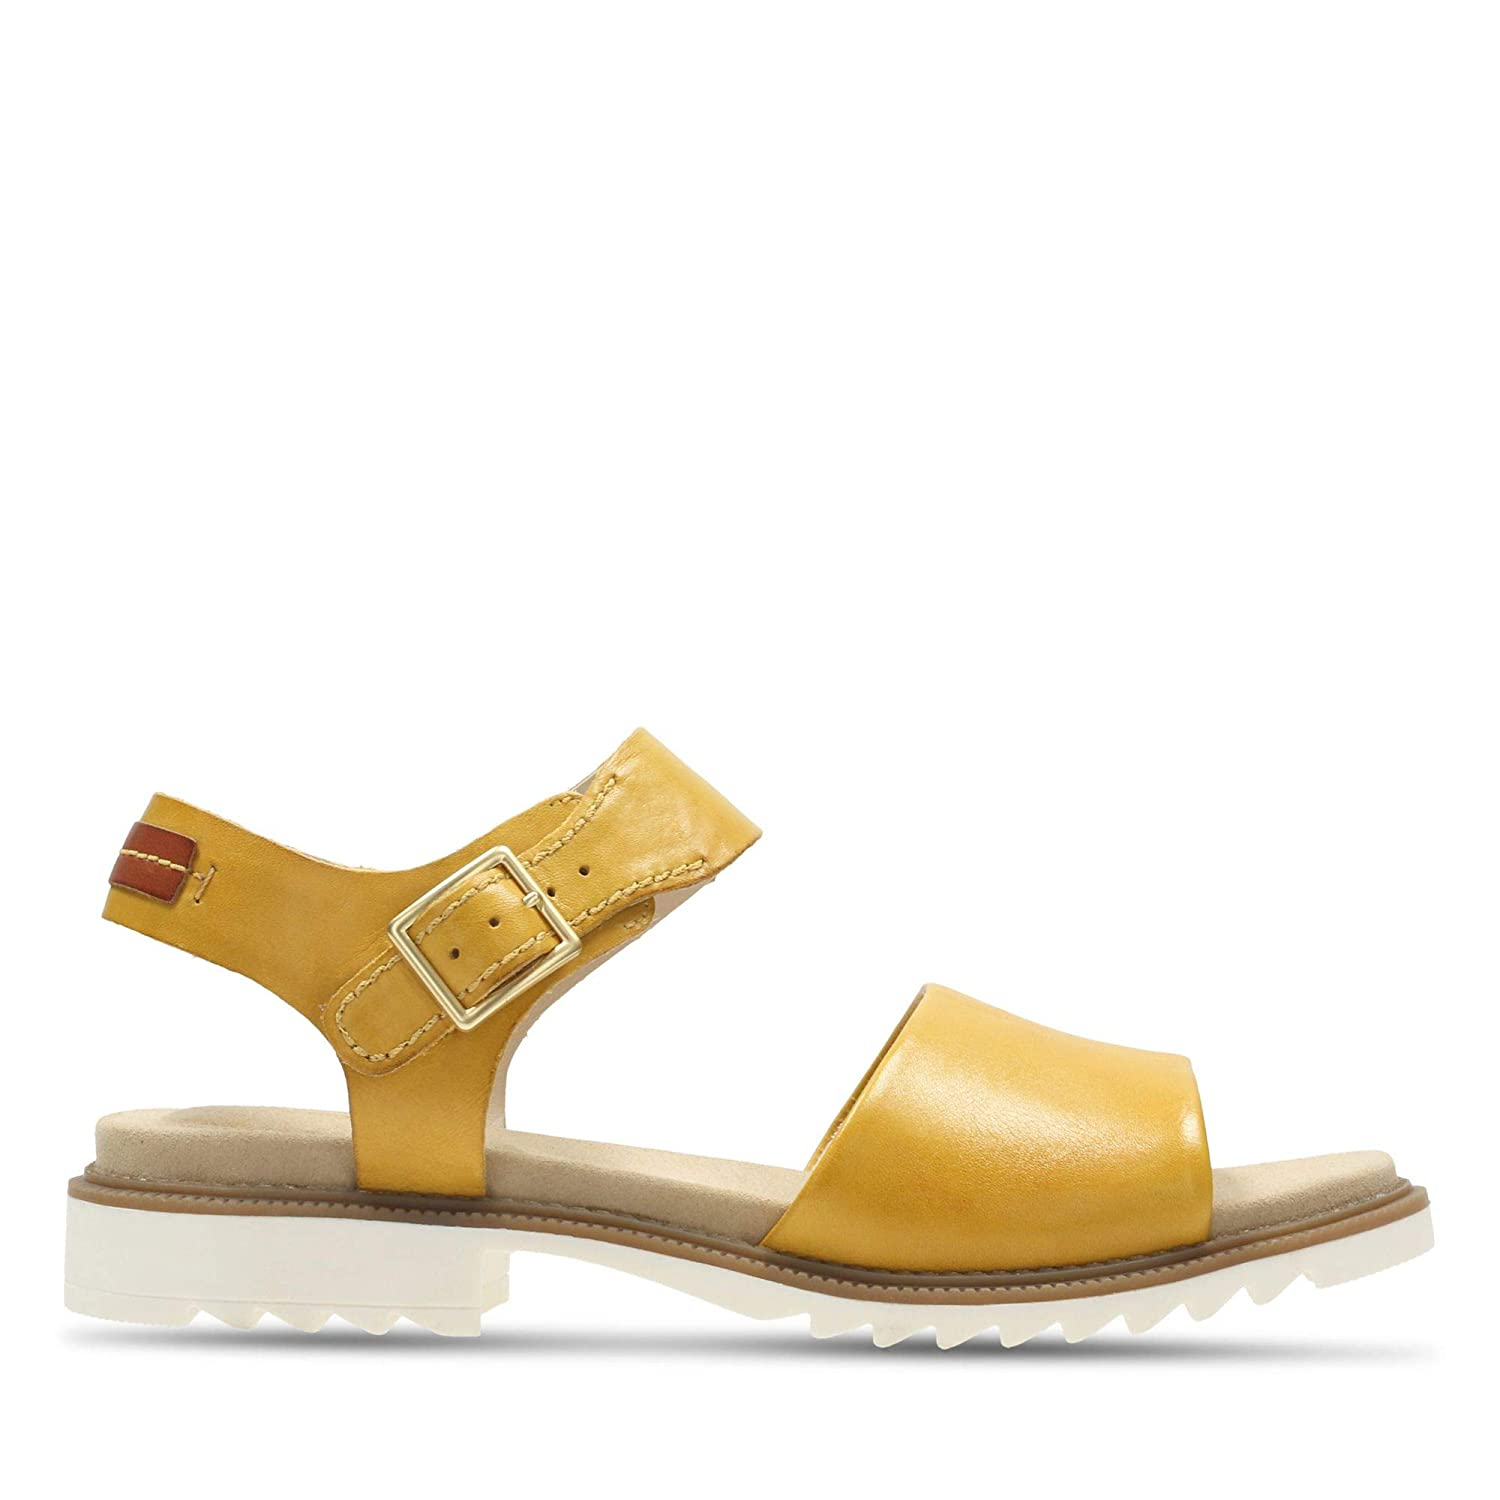 64cb9d848e5a Clarks Ferni Fame Leather Sandals in Yellow  Amazon.co.uk  Shoes   Bags